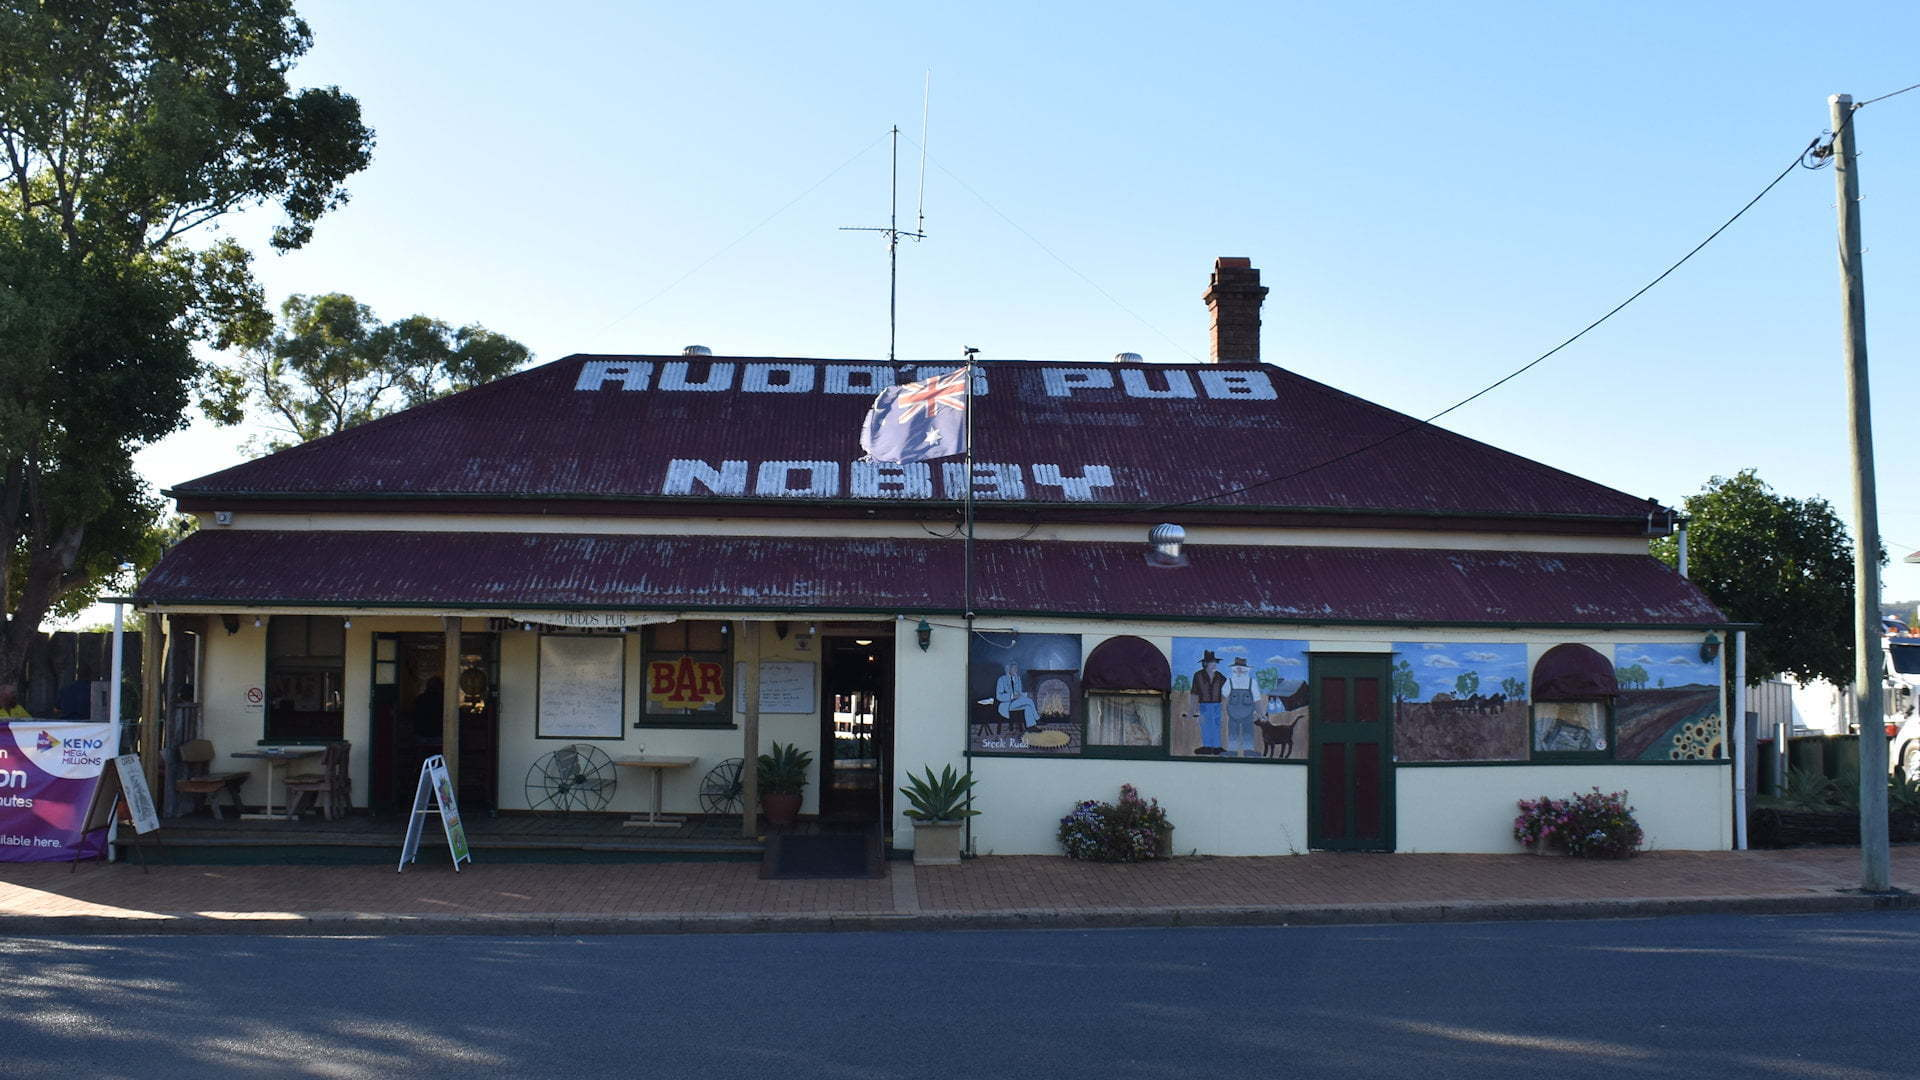 The front of a country pub with Rudd's Pub Nobby written on the roof, the pub of Dad and Dave's fame from Rudd Steele